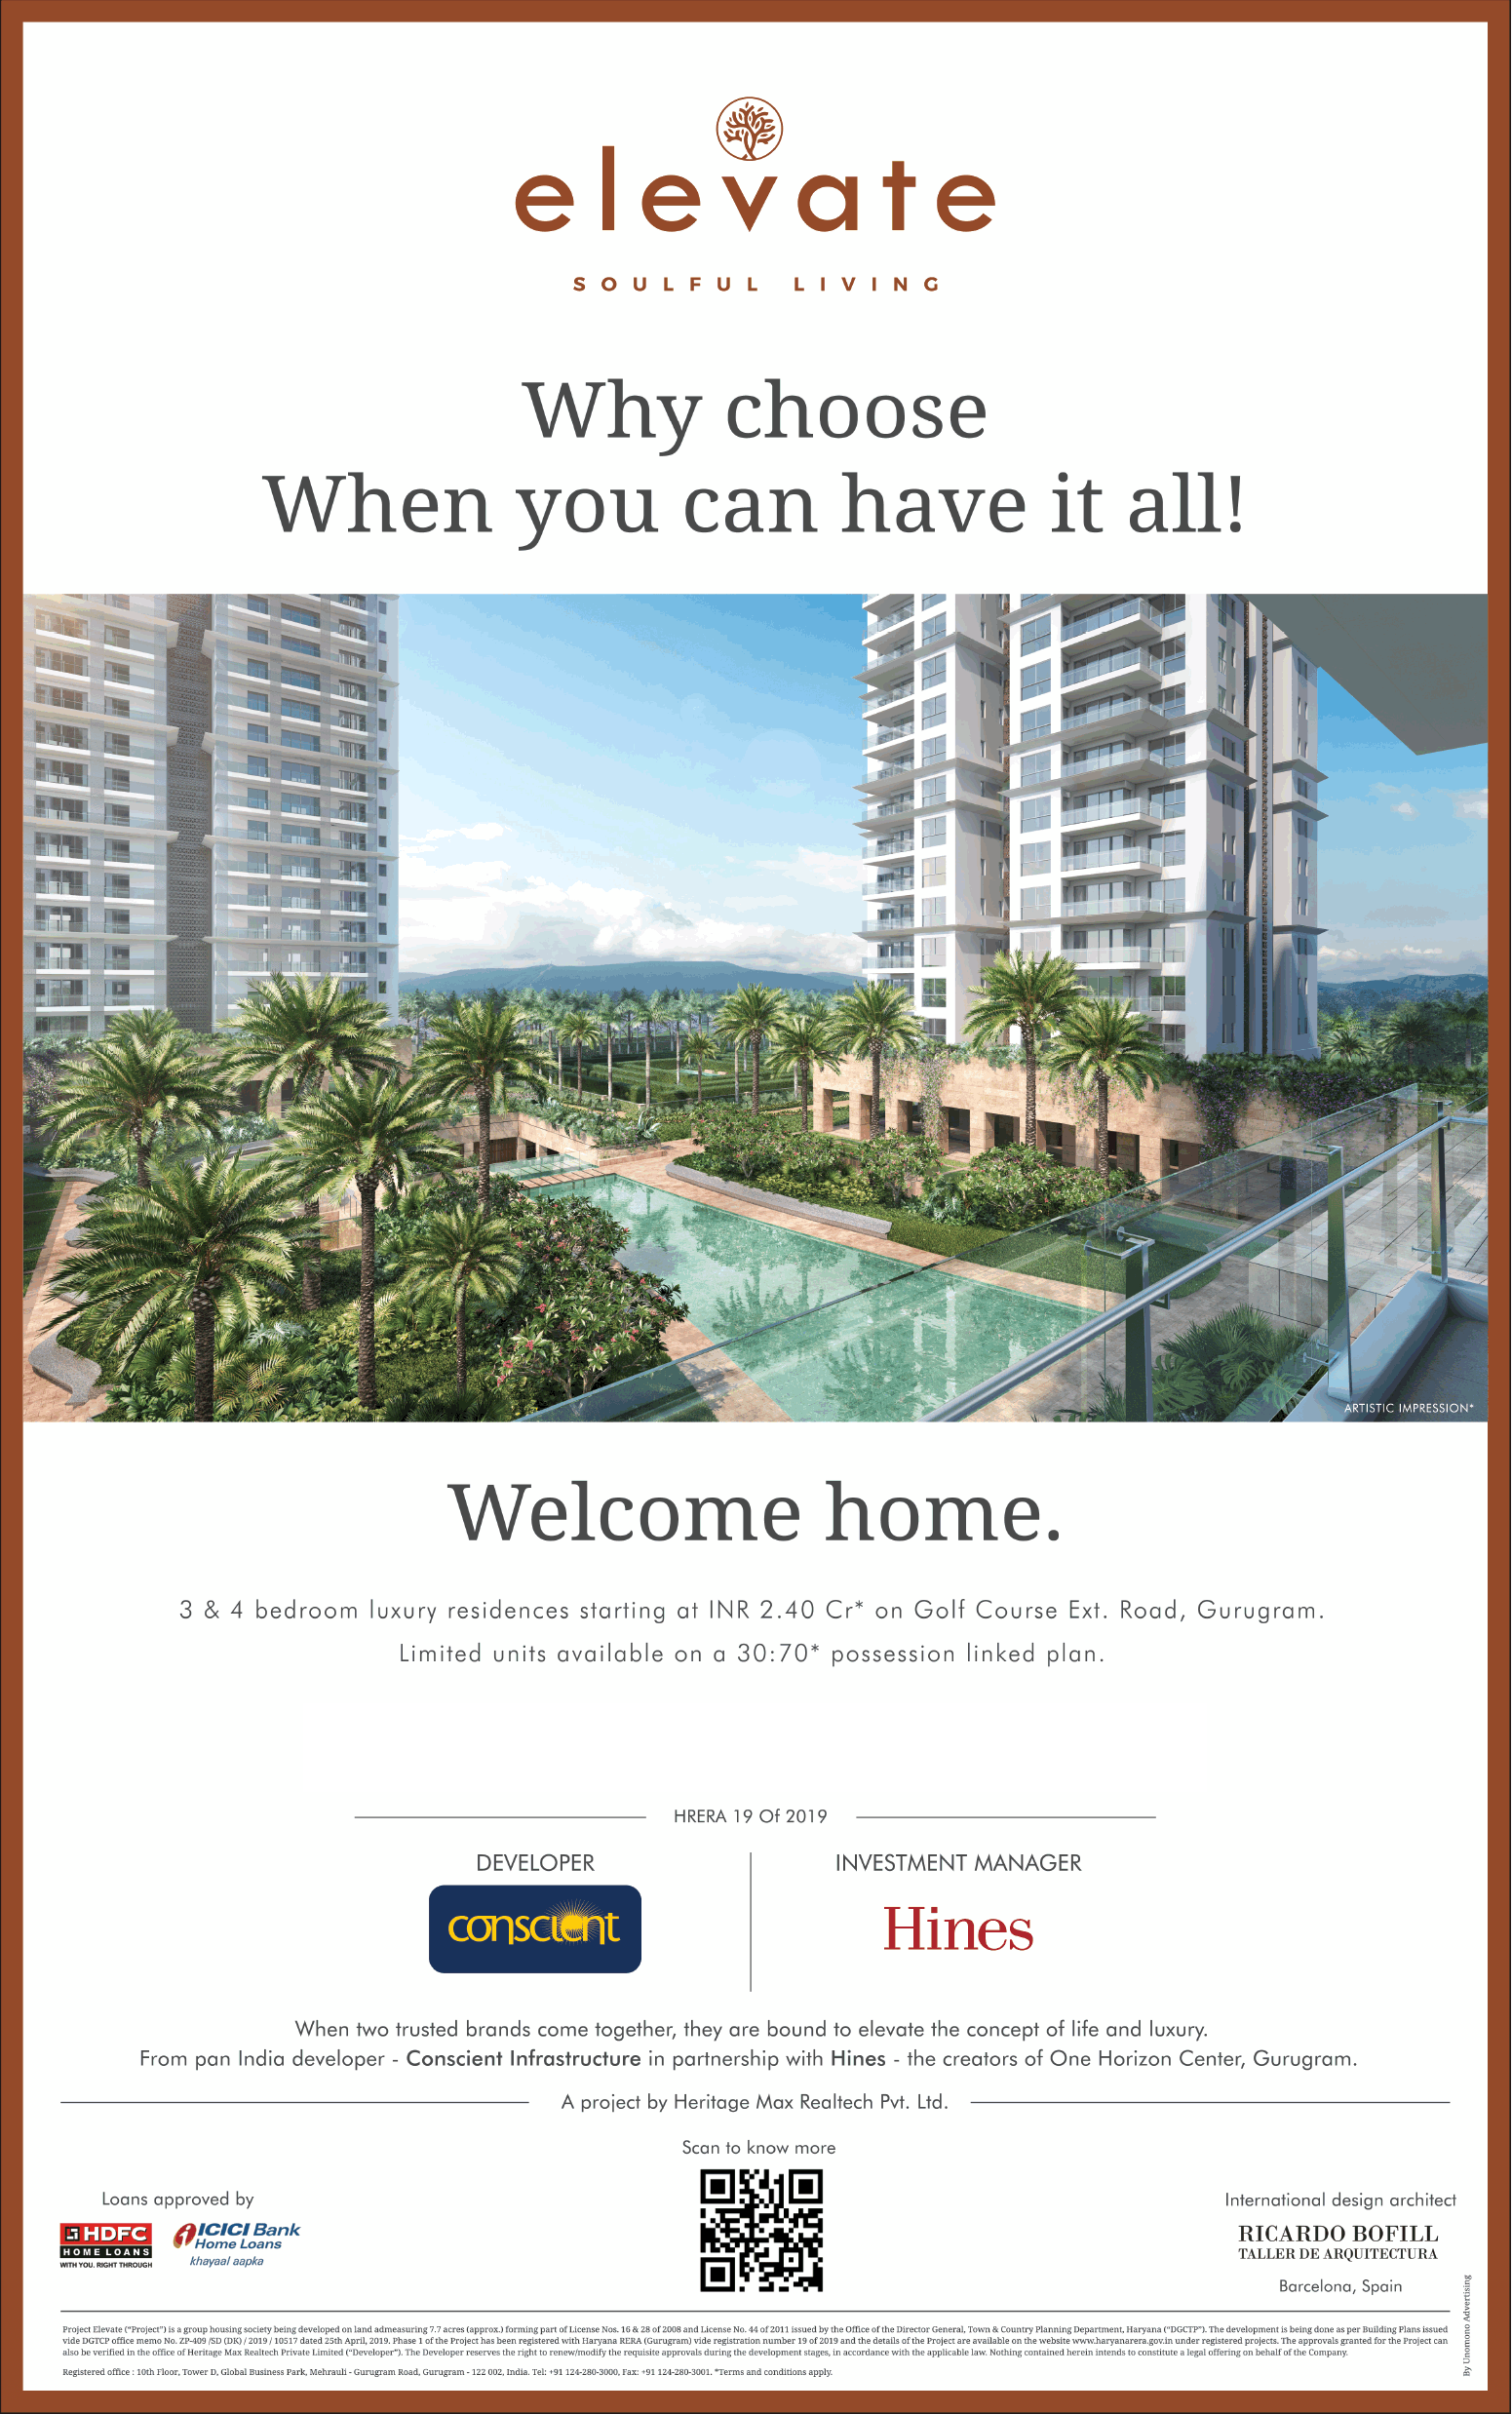 Book 3 4 bedroom luxury residences starting Rs 2 40 Cr at Conscient Hines Elevate Gurgaon